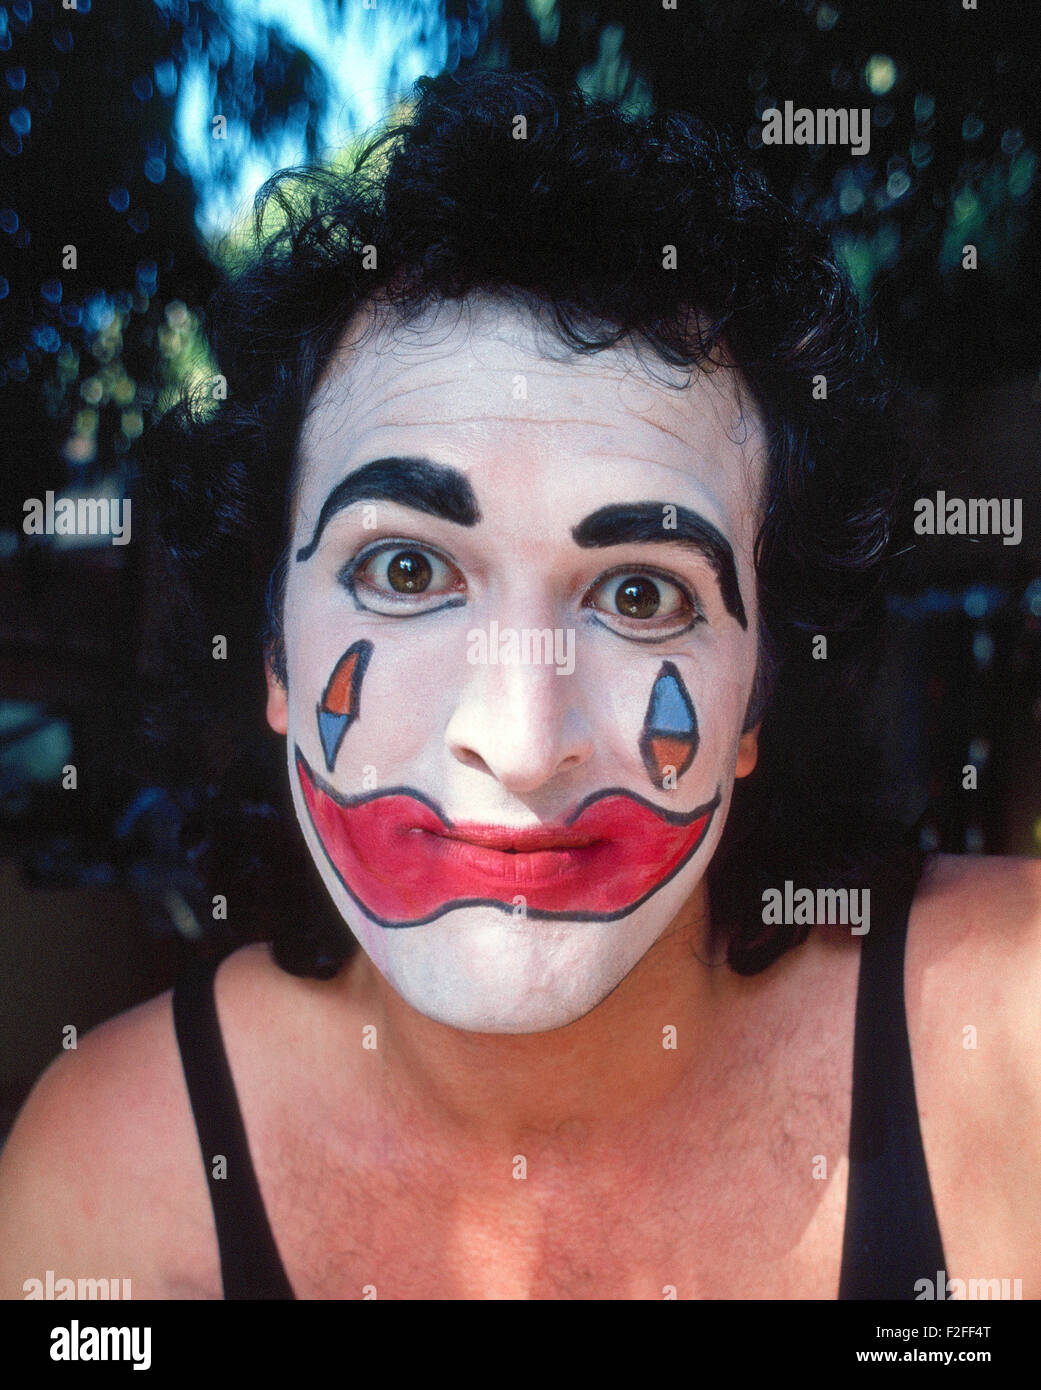 A male mime with a smile of large red lips painted on his clown face stares with big brown eyes at the camera for - Stock Image